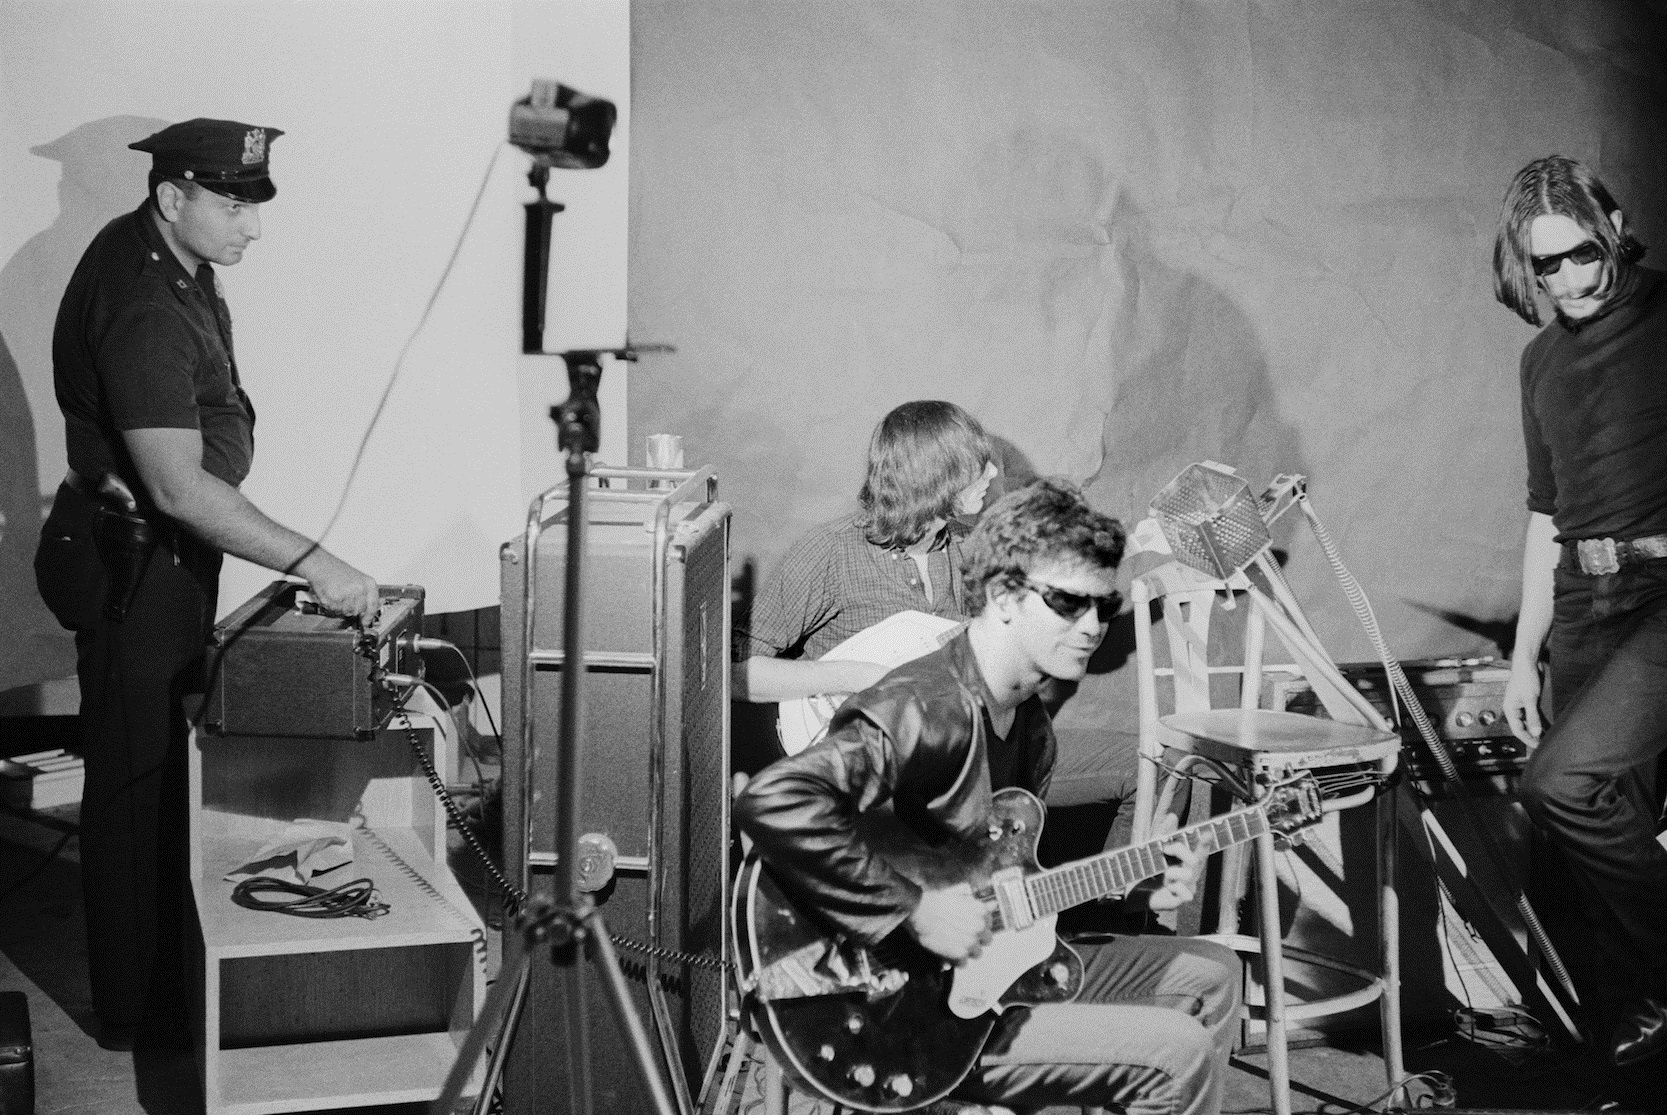 Todd Haynes finishes new documentary on The Velvet Underground - Consequence